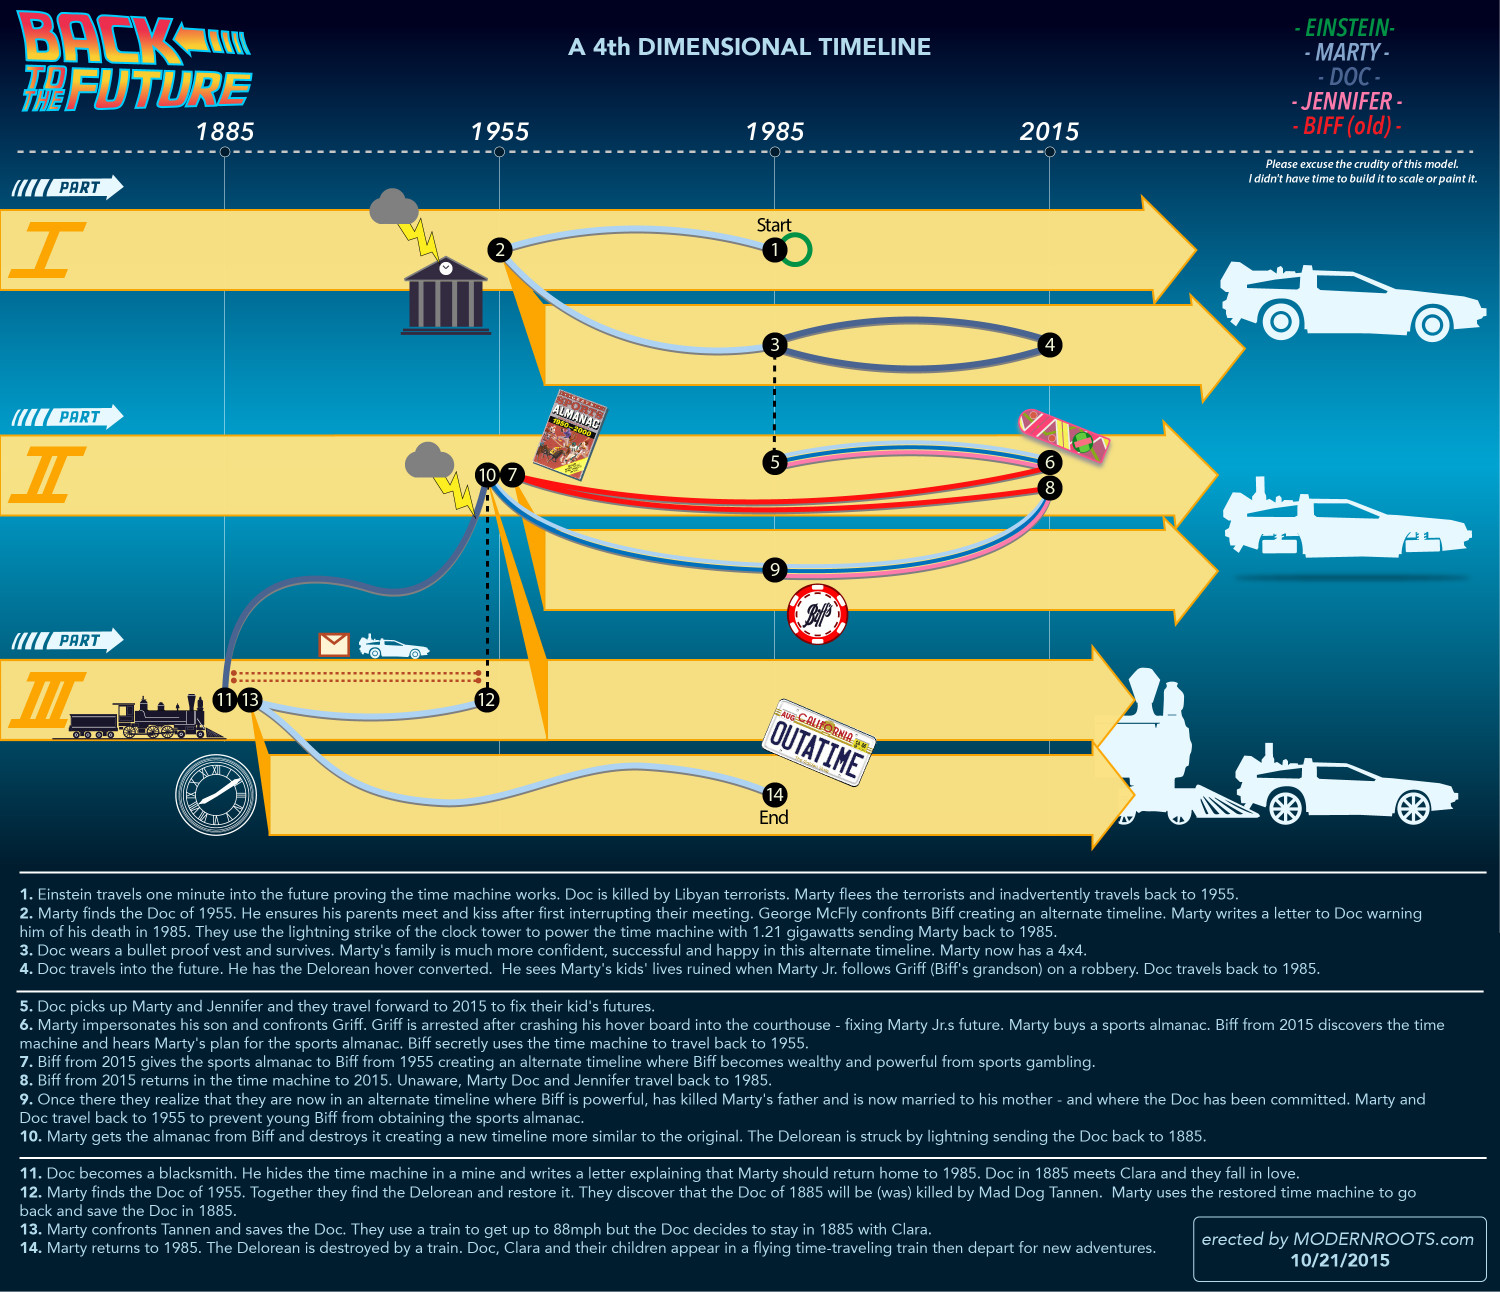 Back to the Future - 4th Dimensional Timeline Infographic